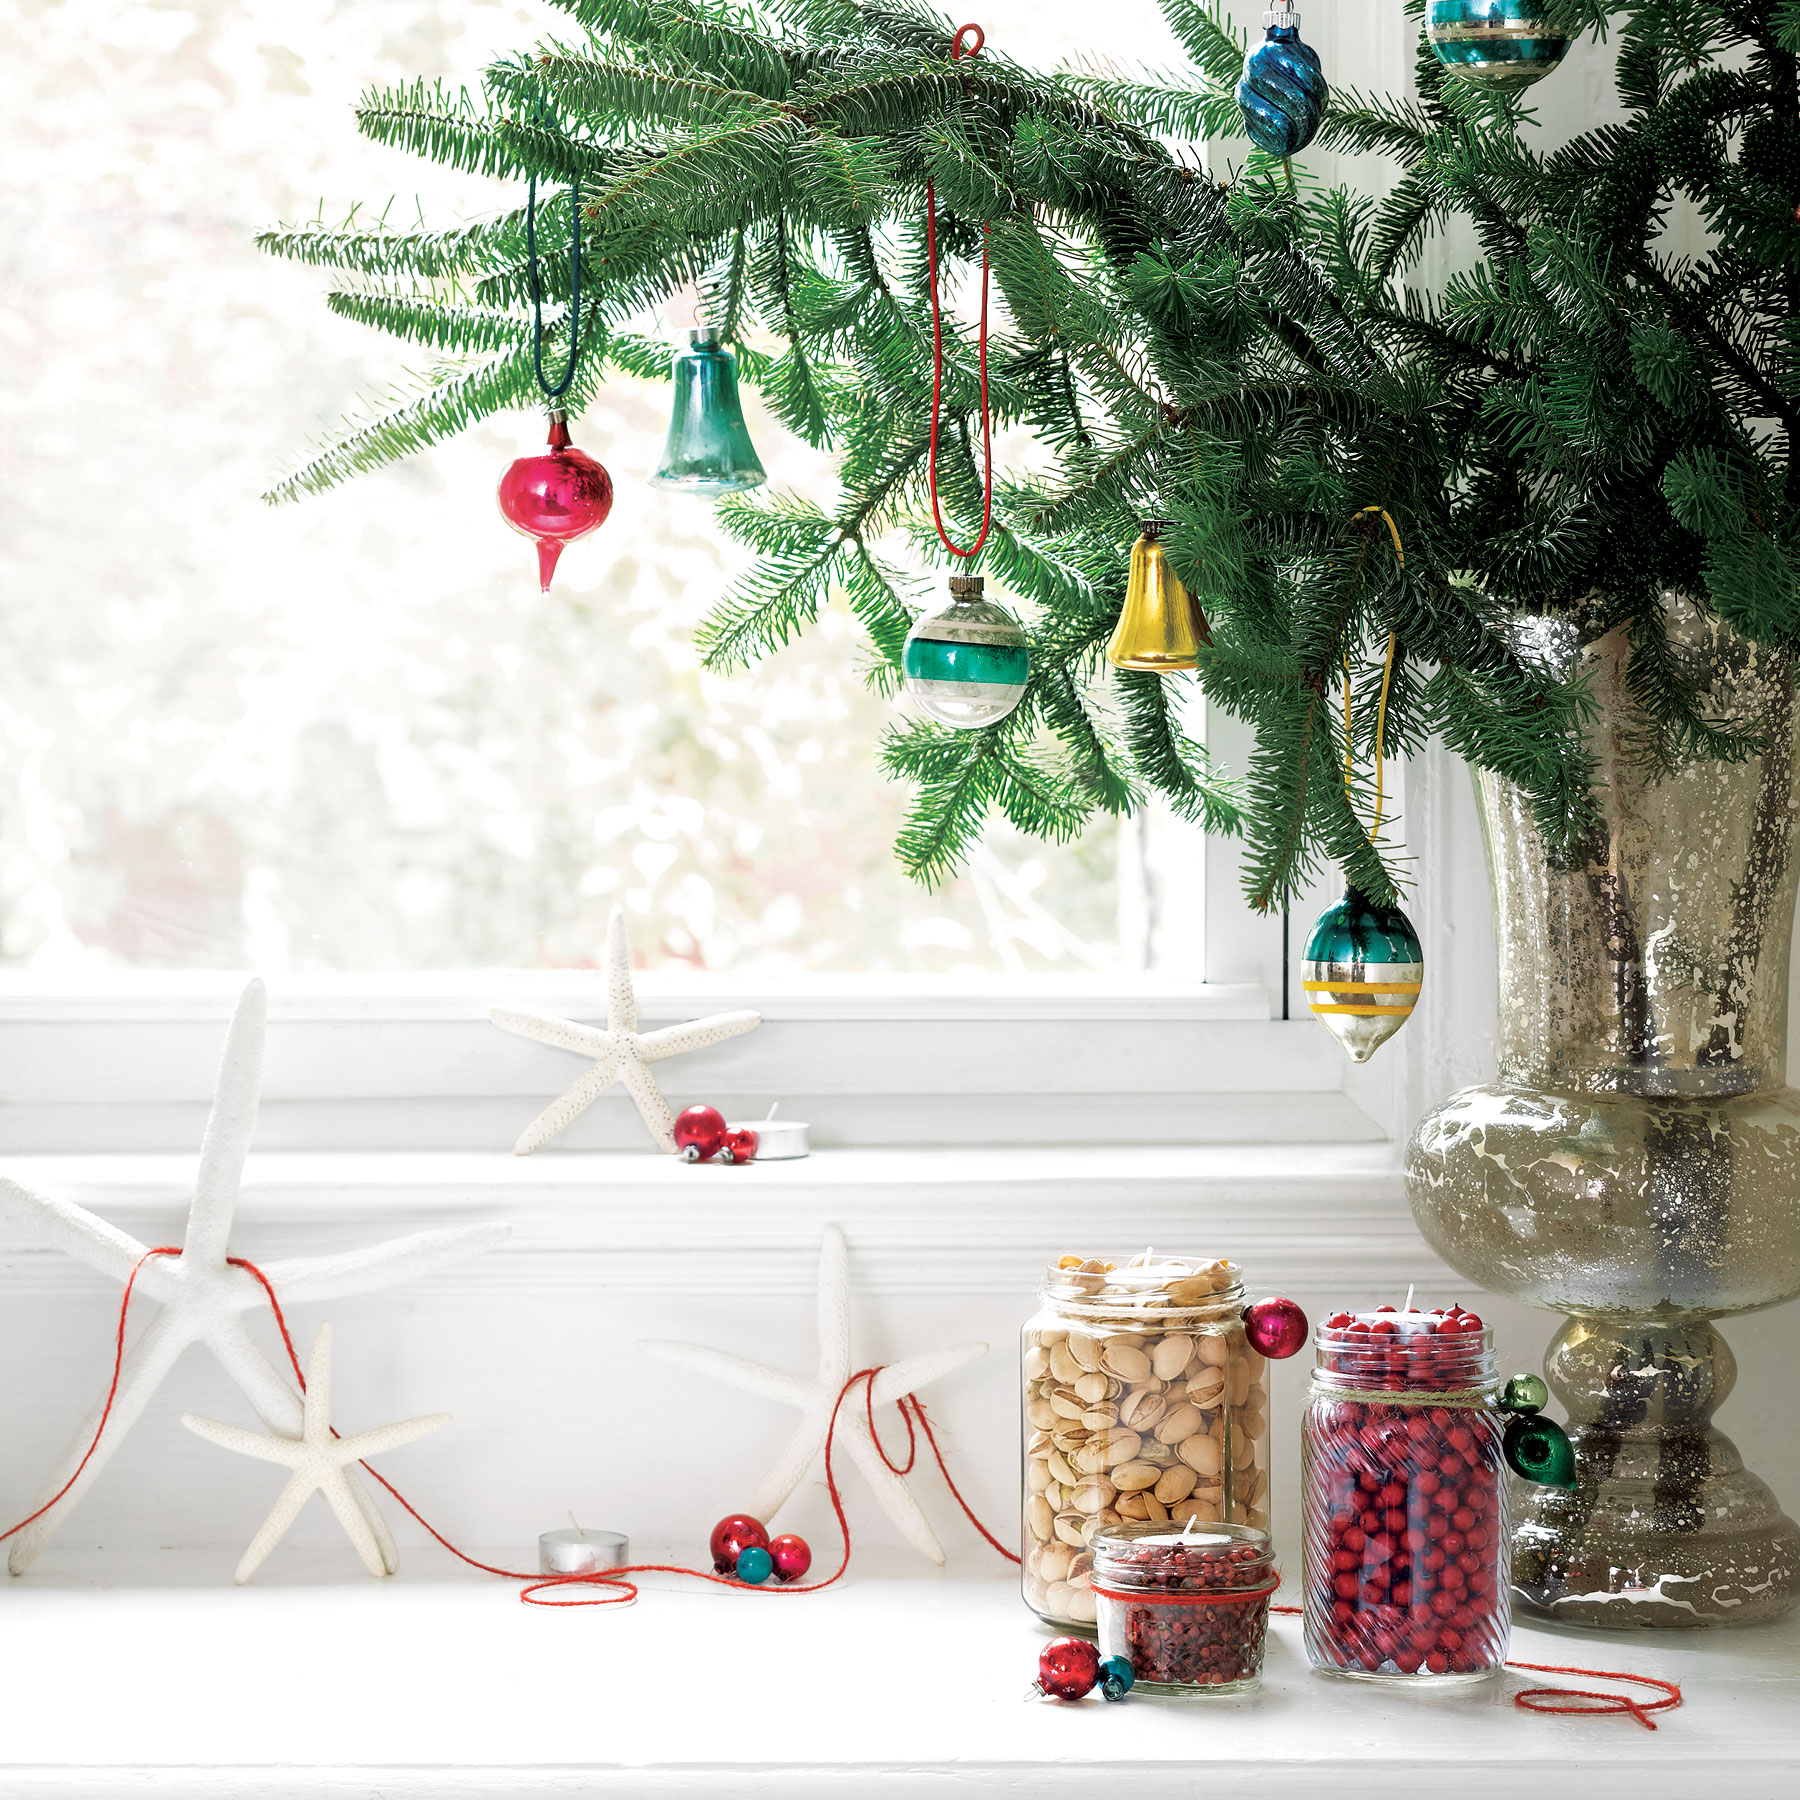 15 Easy Holiday Decorating Ideas That Take Five Minutes Or Less